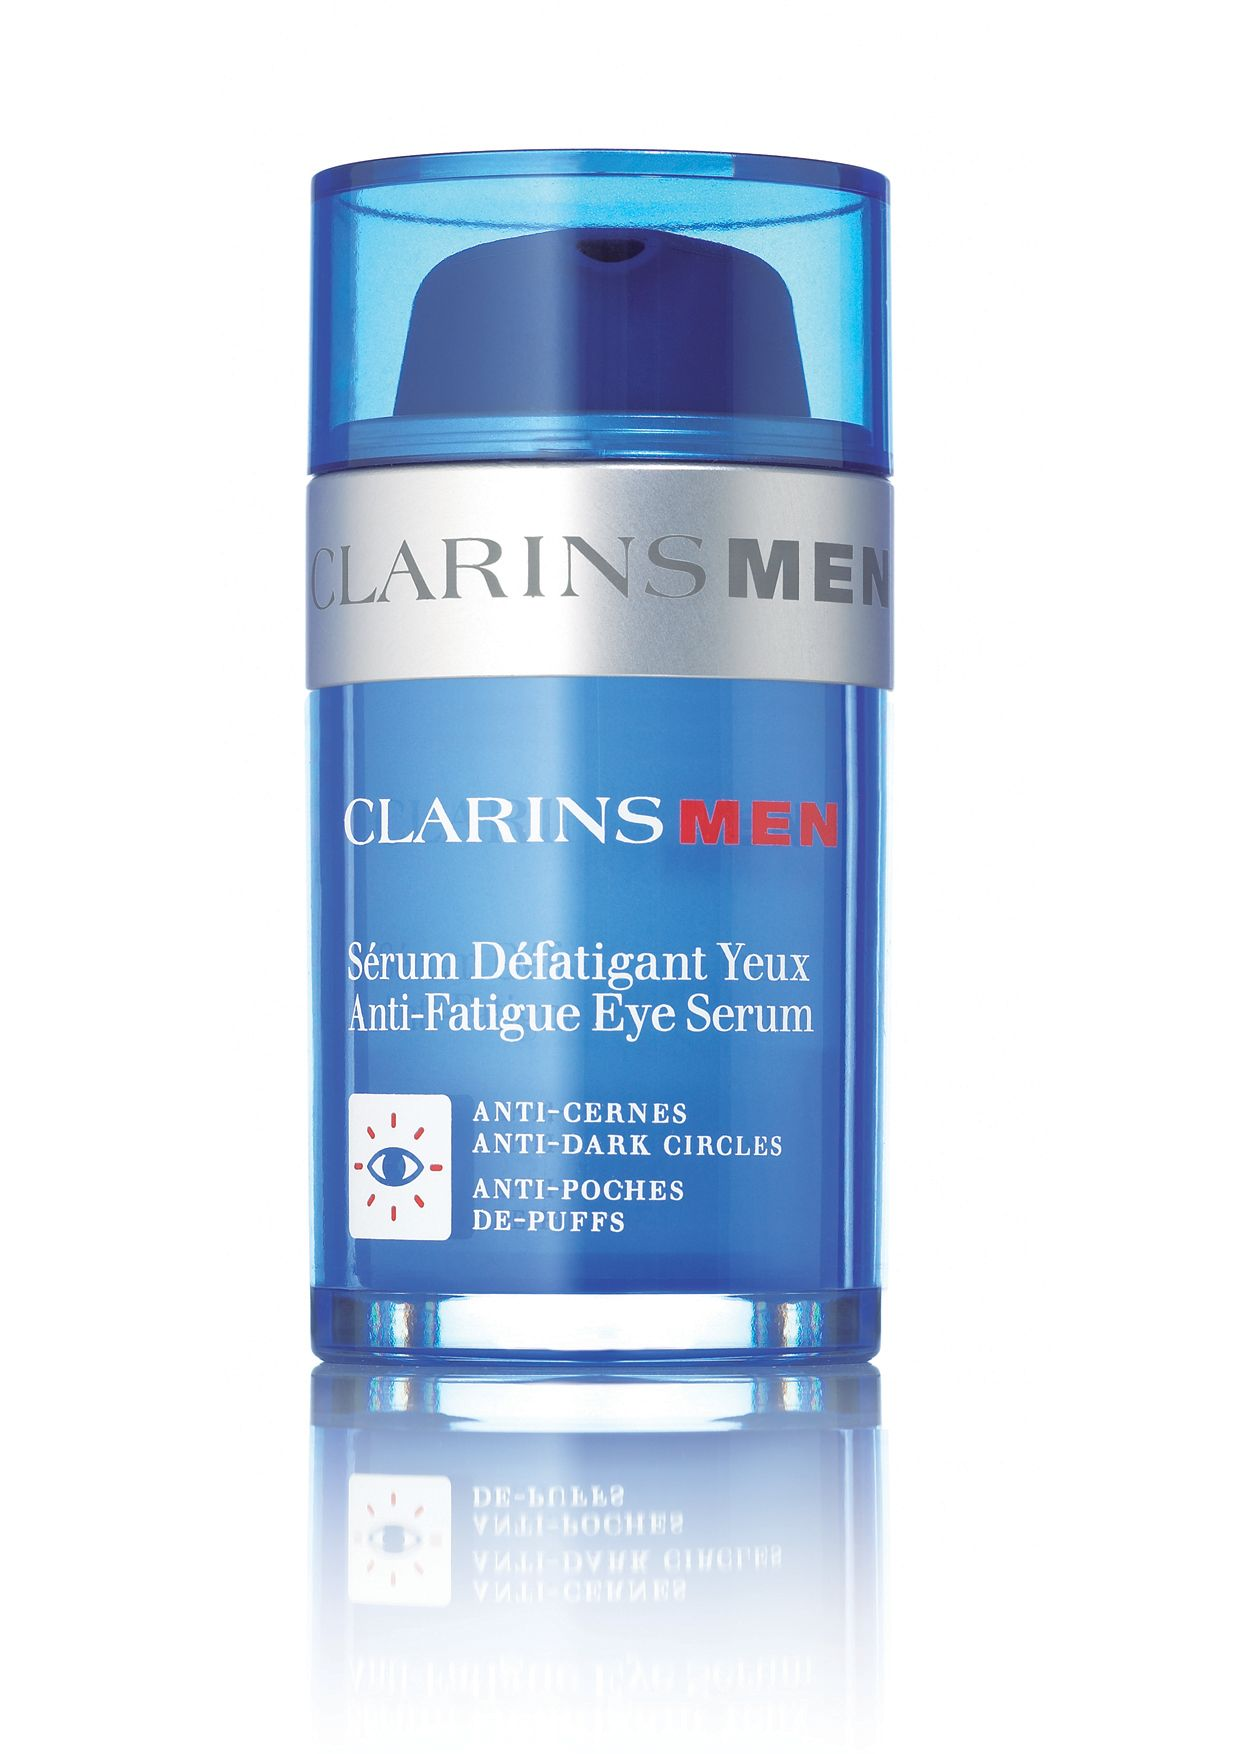 Anti Fatigue Eye Serum